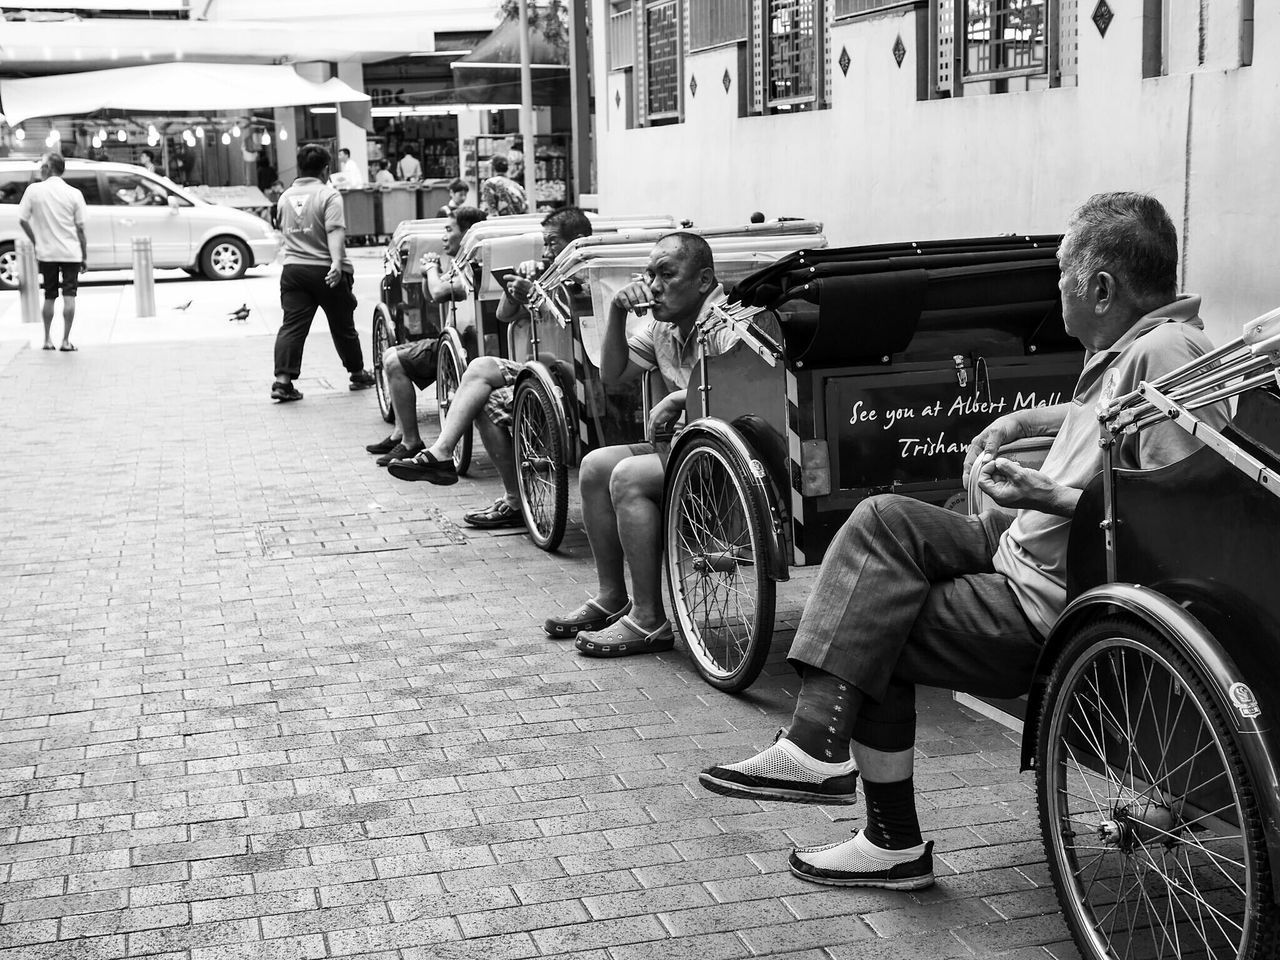 real people, transportation, wheelchair, land vehicle, mode of transport, street, lifestyles, sitting, building exterior, men, one person, outdoors, architecture, city, day, physical impairment, built structure, differing abilities, people